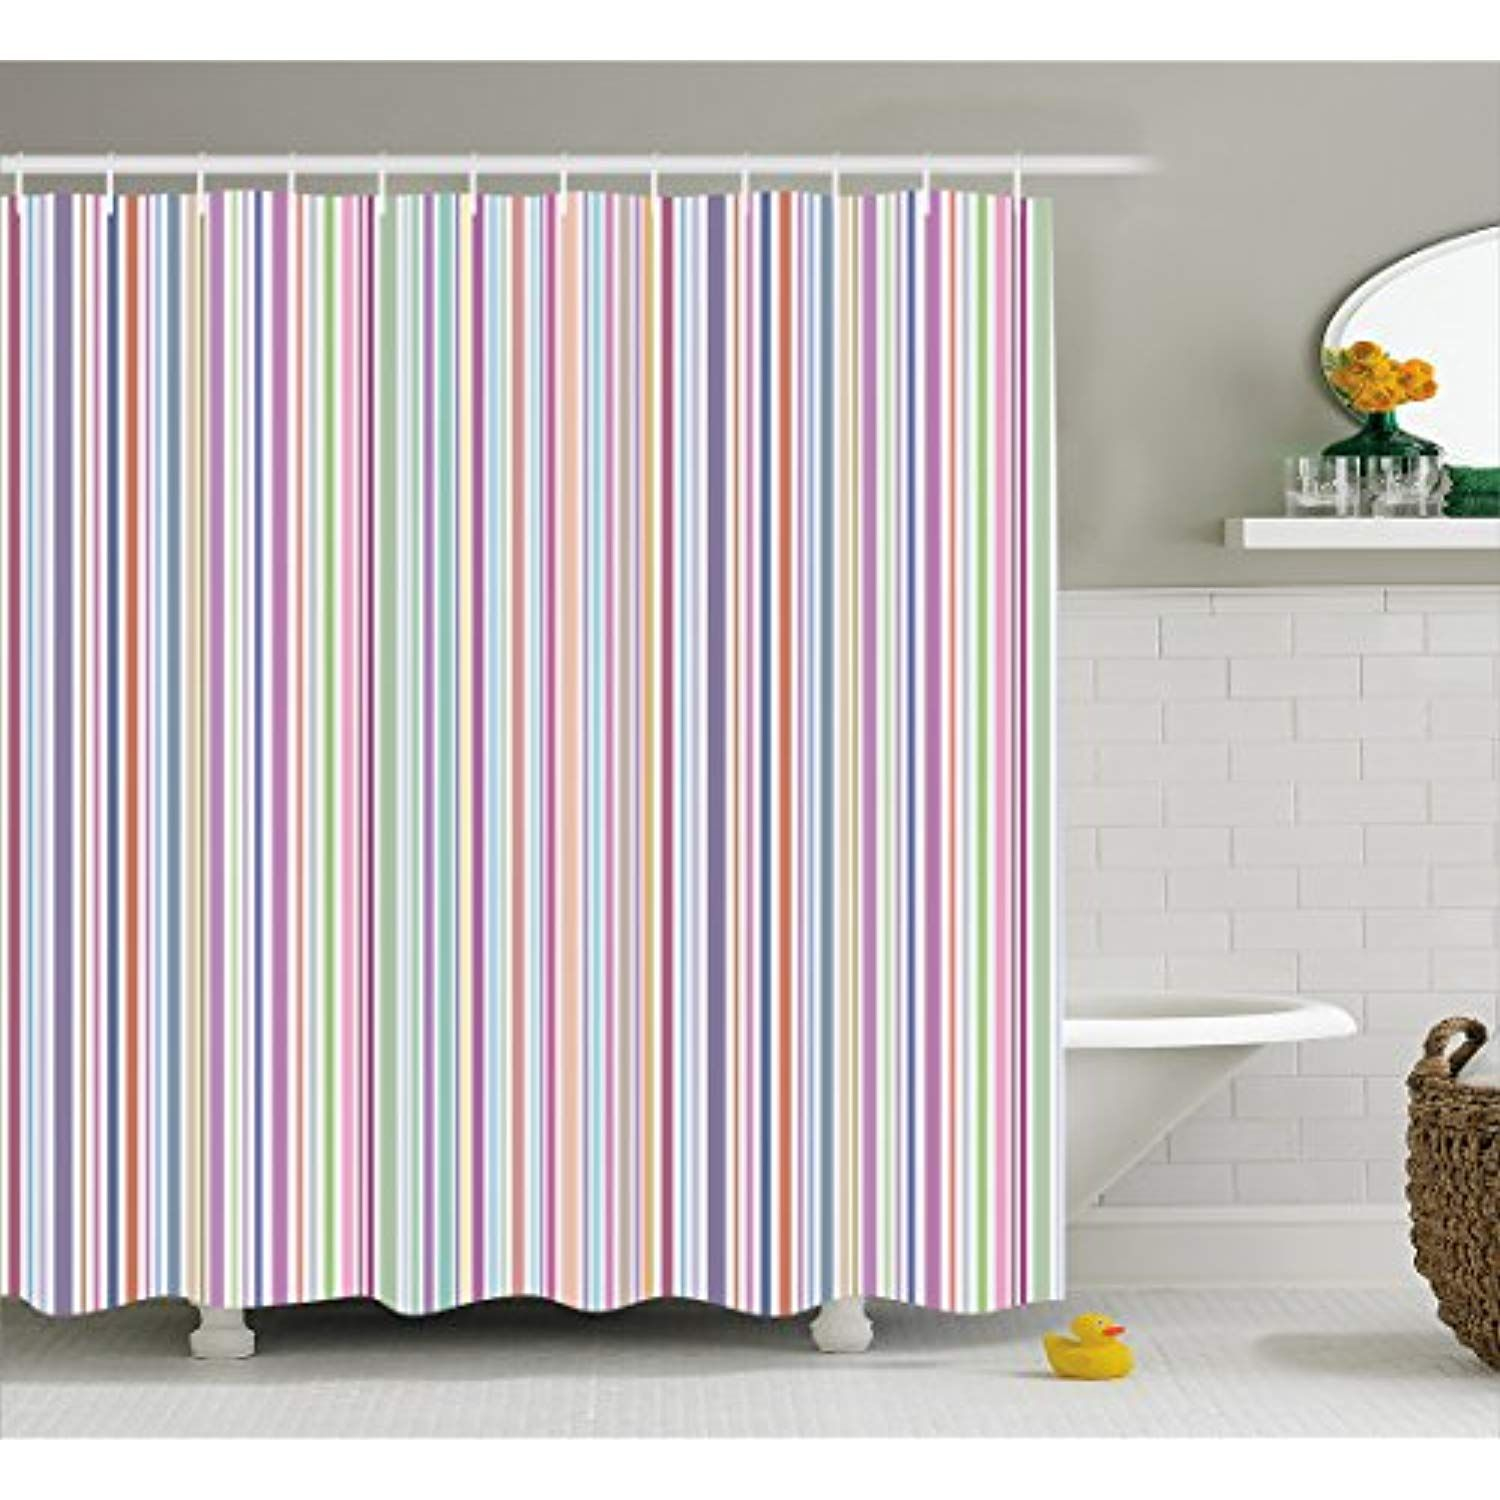 Lunarable Striped Shower Curtain By Pastel Colored Vertical Lines